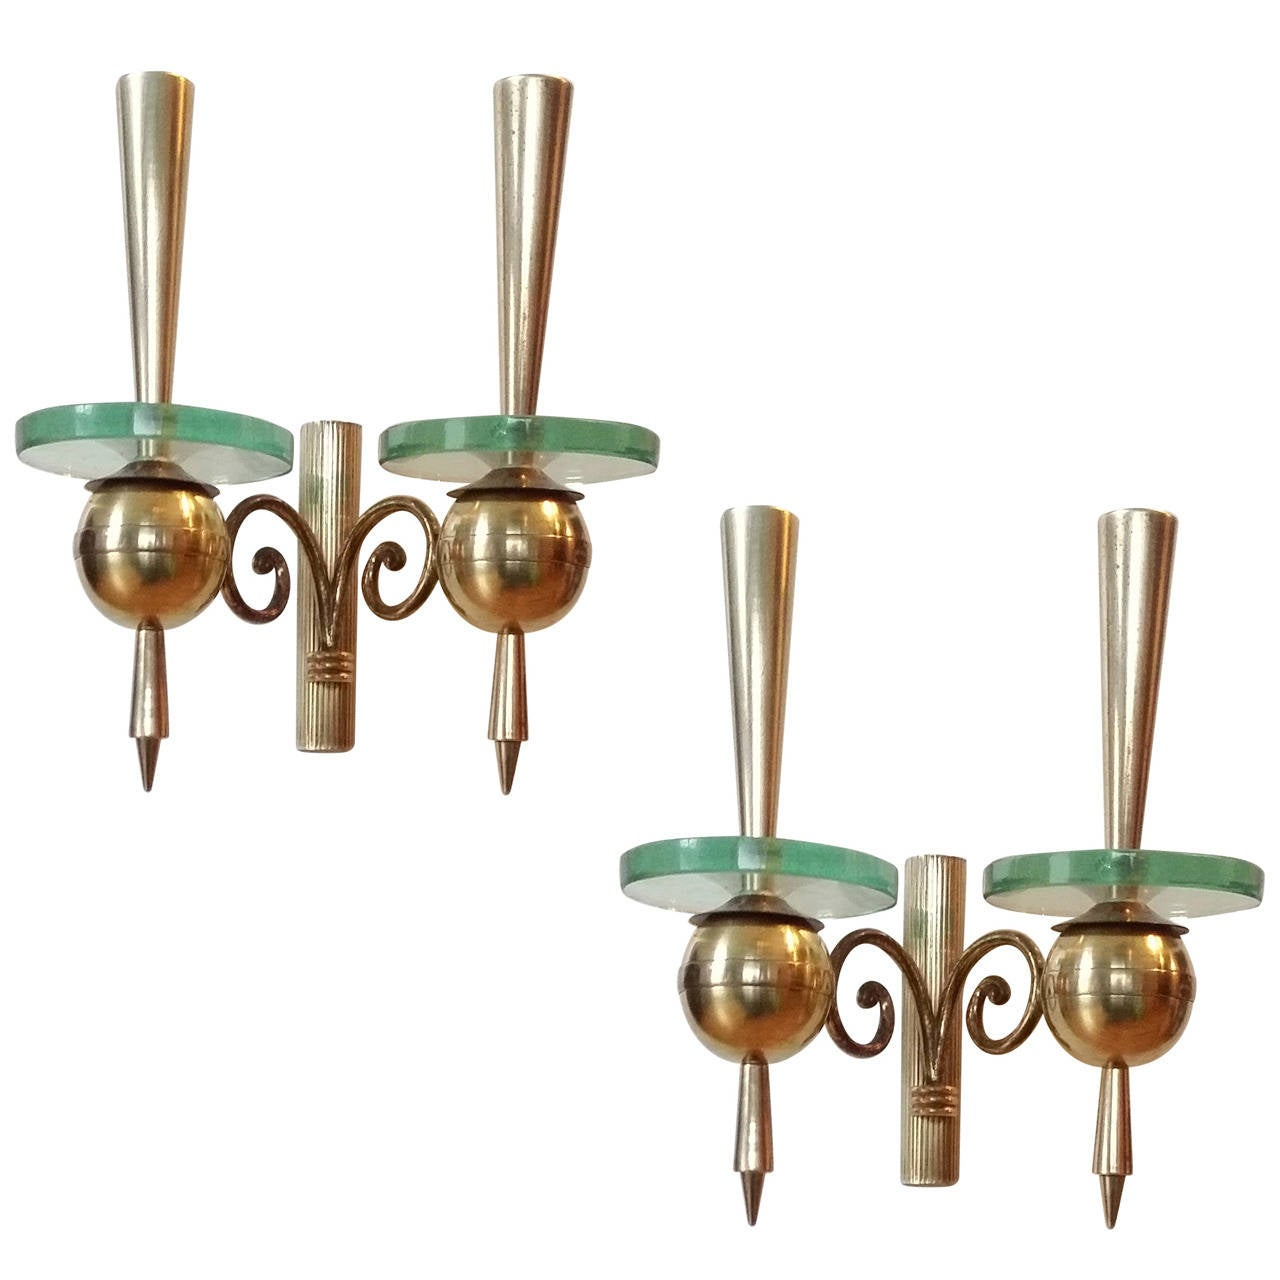 Pair of 1950s Brass and Thick Glass Sconces Attributed to Pietro Chiesa, Italy